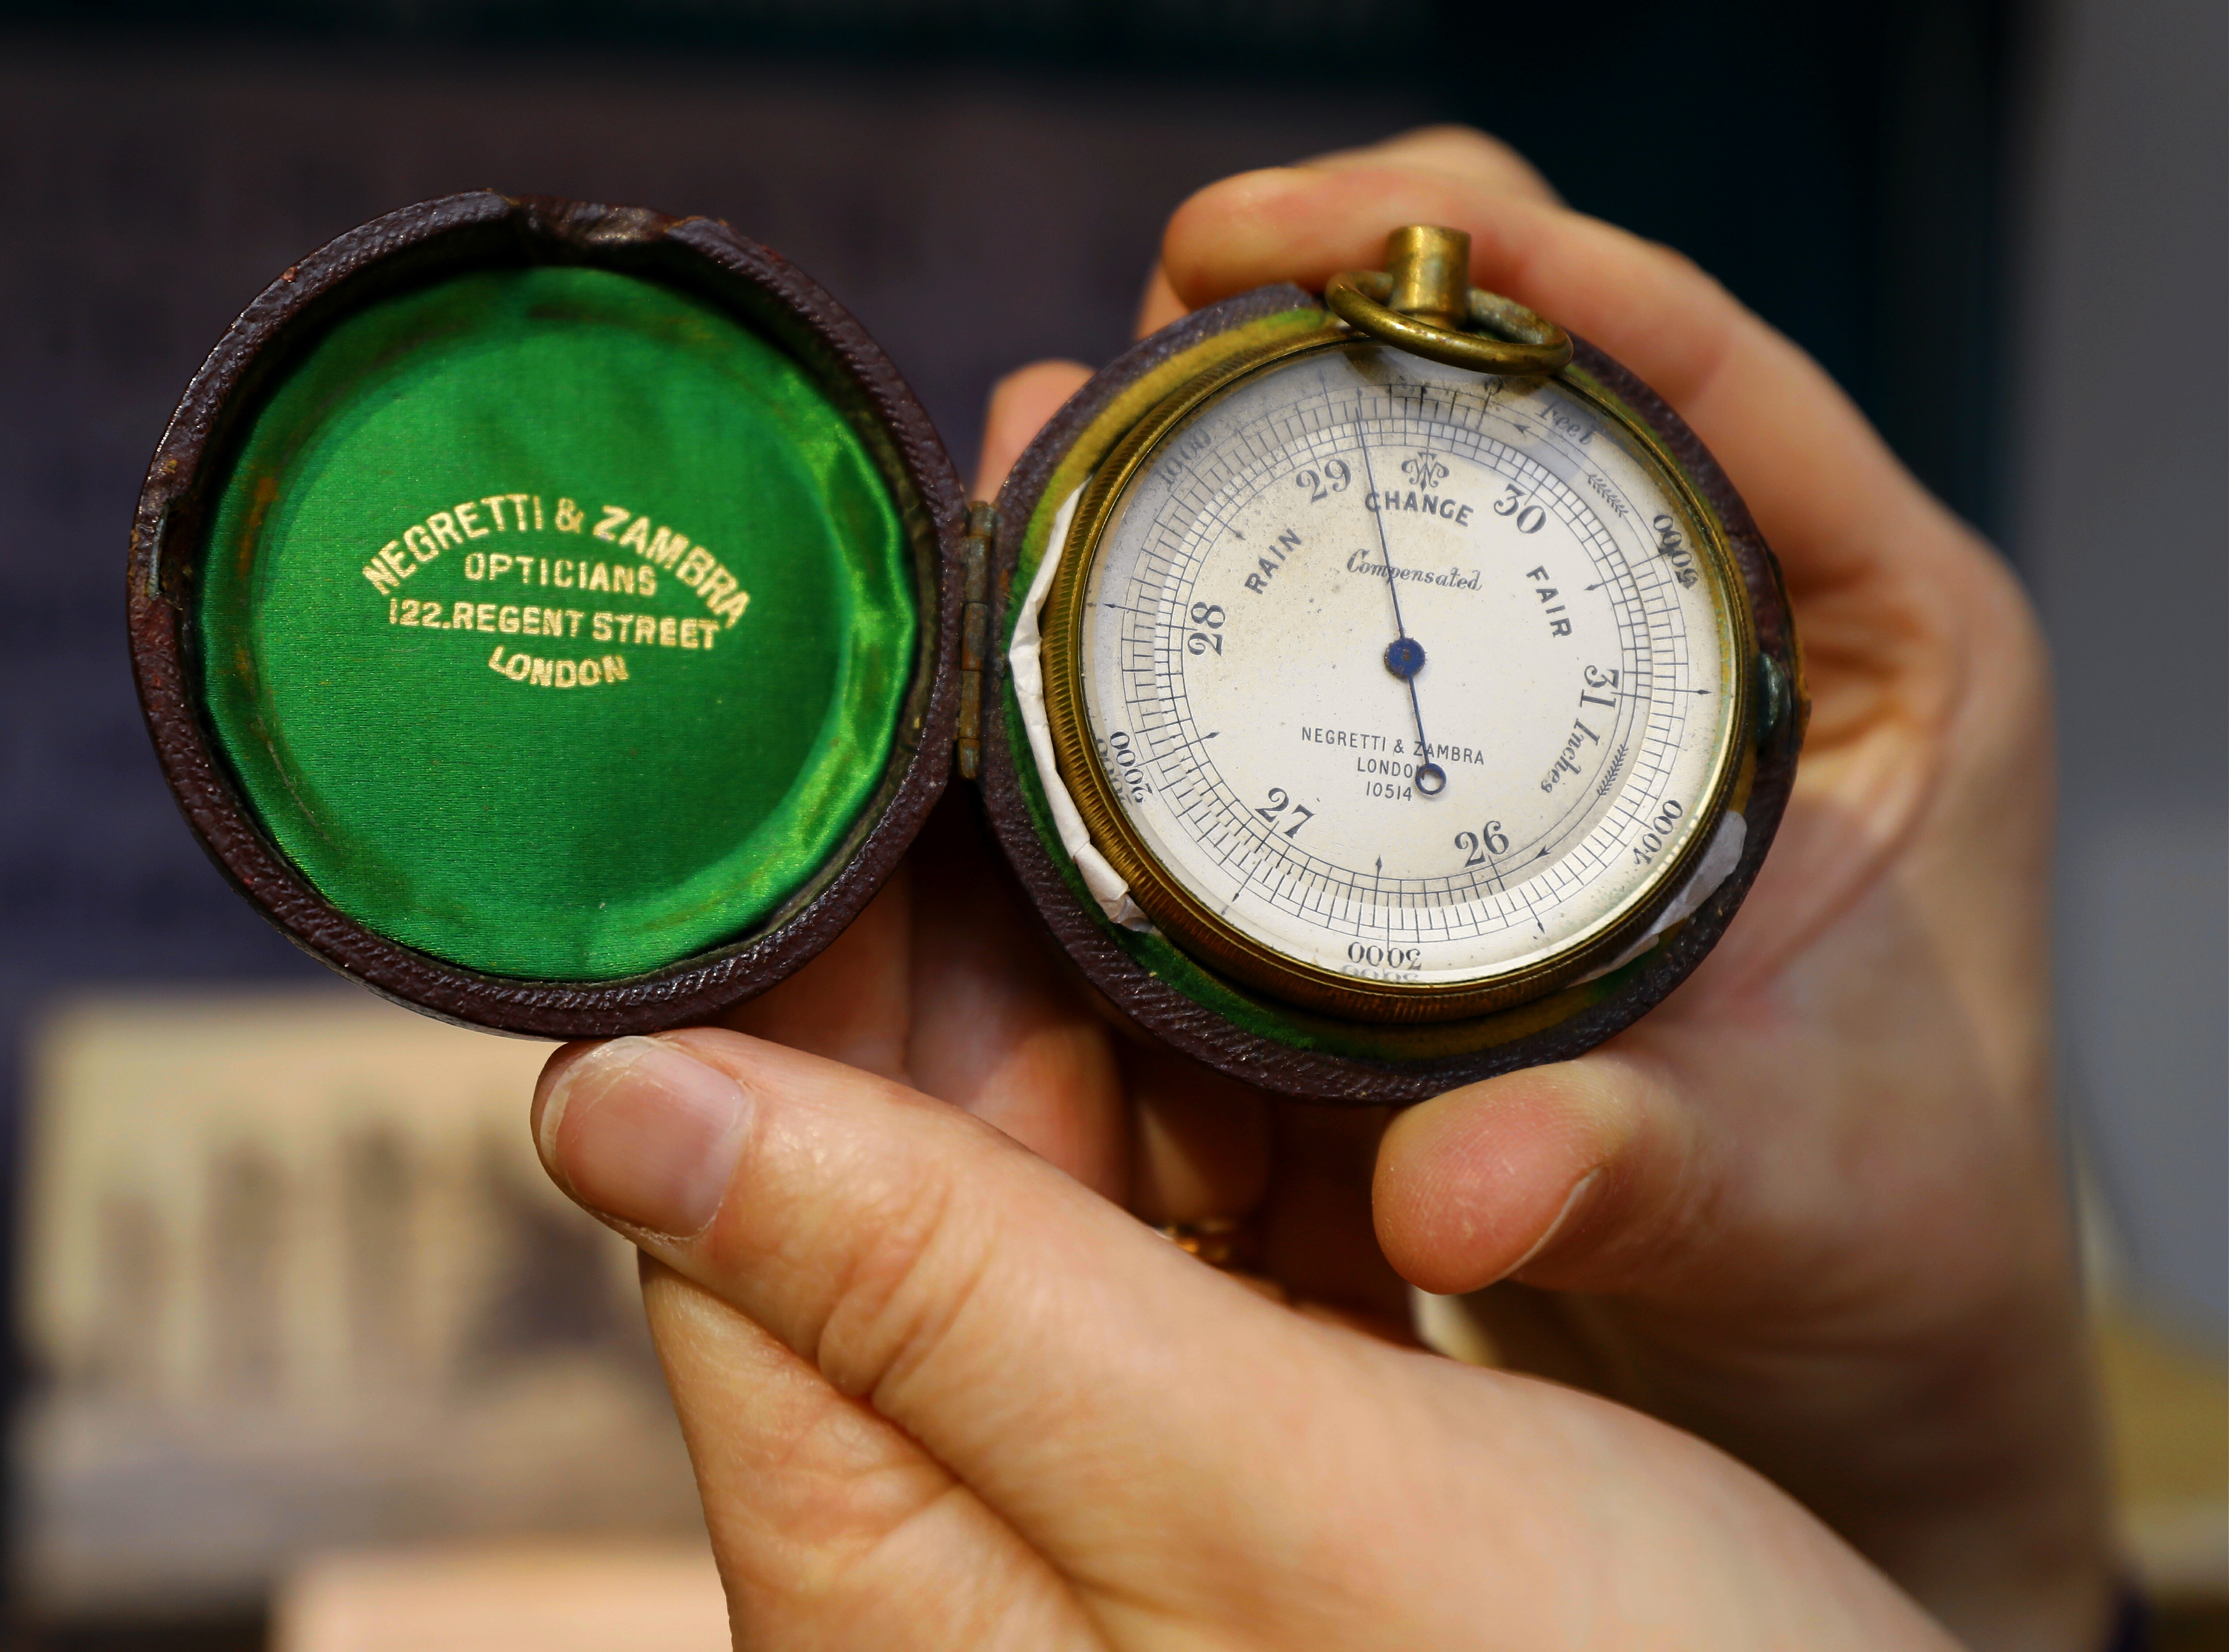 Sir Hugh Munro's barometer is part of an exhibition at Kirriemuir's Gateway to the Glens museum